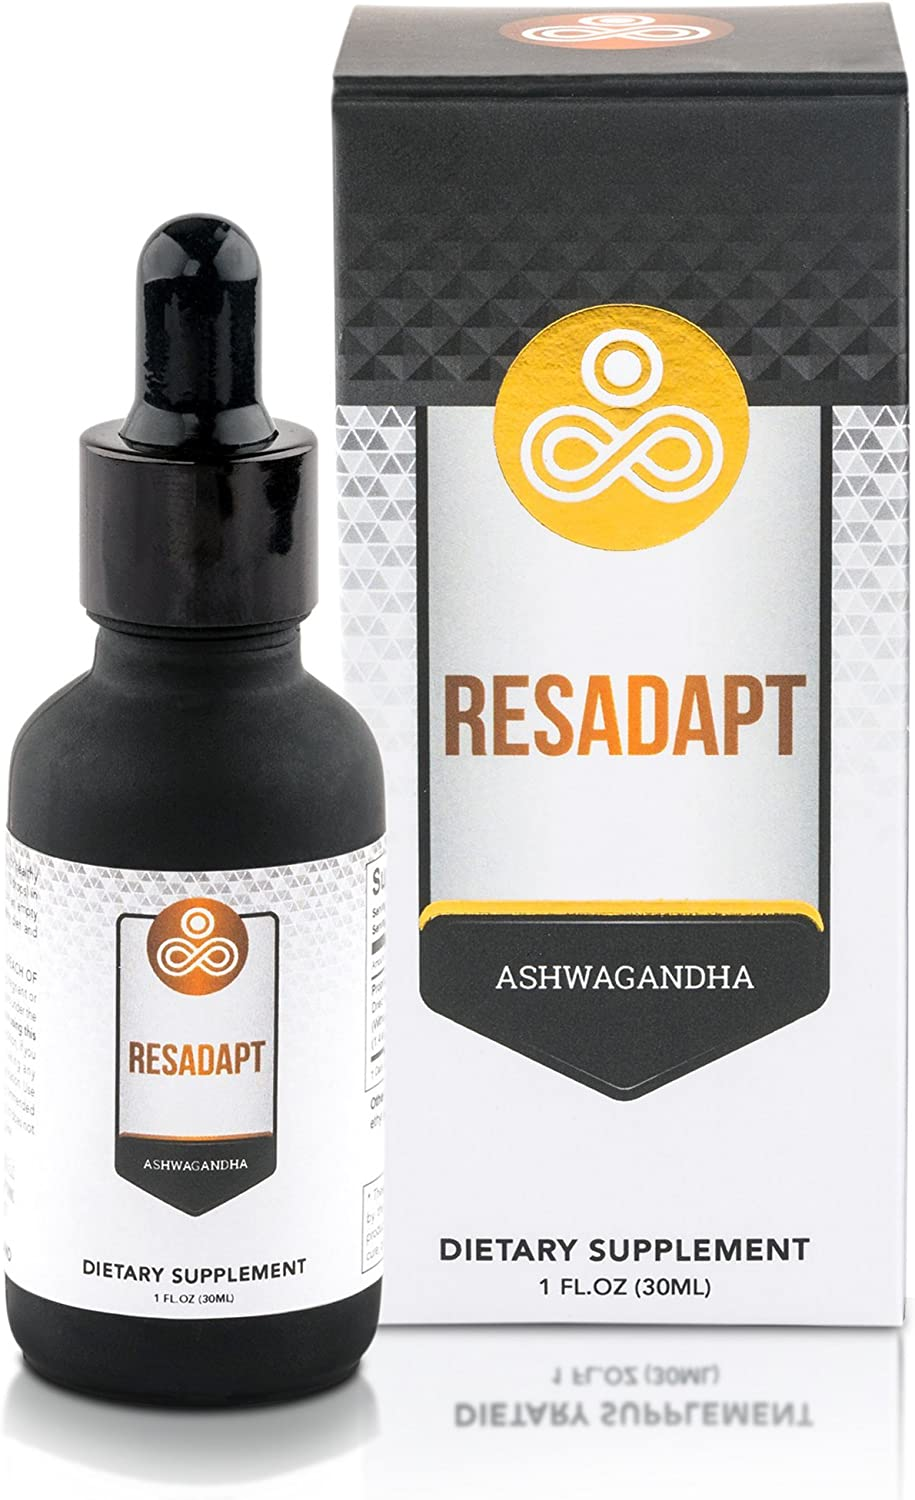 Premium Ashwagandha Supplement Resadapt - Powerful Adaptogenic Herbal Extract - Liquid Drops for Best Absorption - Non-GMO - Vegan - Immune System & Energy Boost - Anti-Anxiety Action: Health & Personal Care